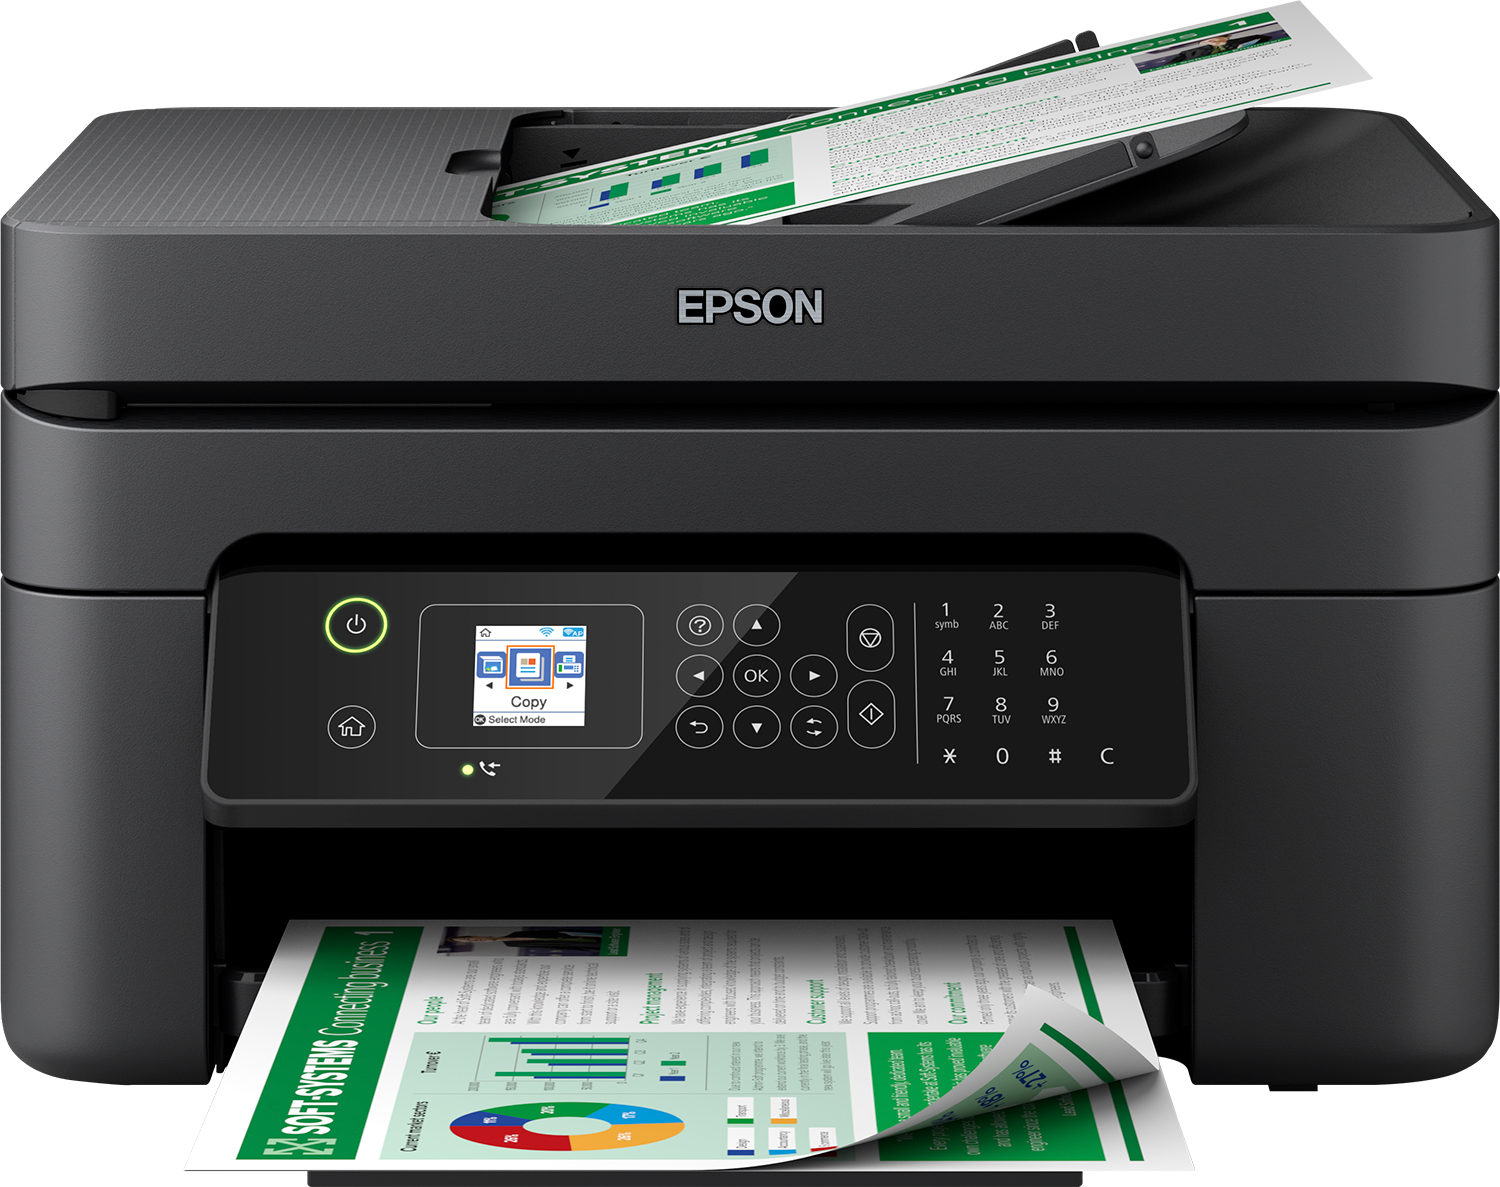 Epson WorkForce WF-2830 DWF